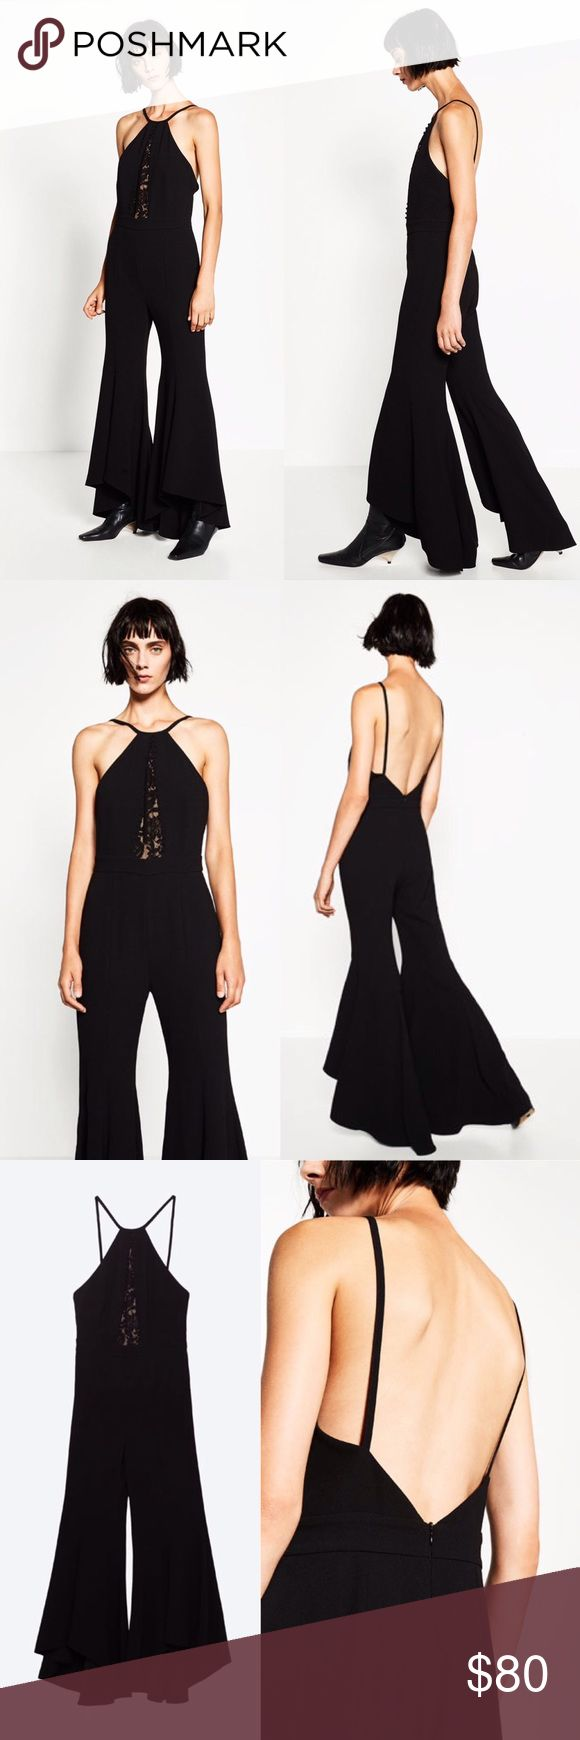 ZARA BLACK LACE JUMPSUIT WITH FLARED TROUSERS ZARA BLACK JUMPSUIT  Features: Flared trousers, lace detail at the neck, back zip closure. Outer shell and lining: 100% polyester. Zara Pants Jumpsuits & Rompers